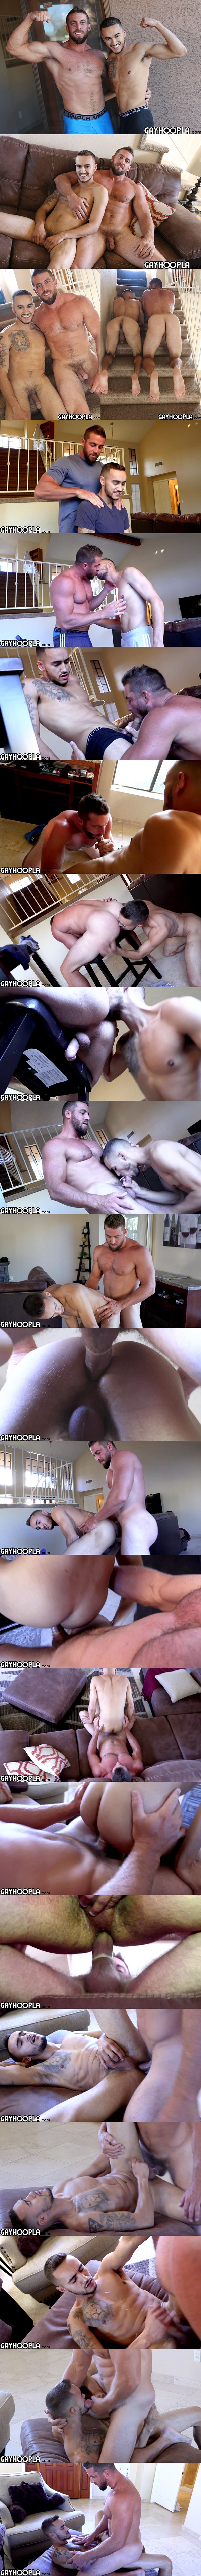 Rugged football stud Derek Jones fucks lean fit latino jock Ethan Manor's tight hairy manhole before he fucks the cum out of Ethan and gives him a facial at Gayhoopla 01